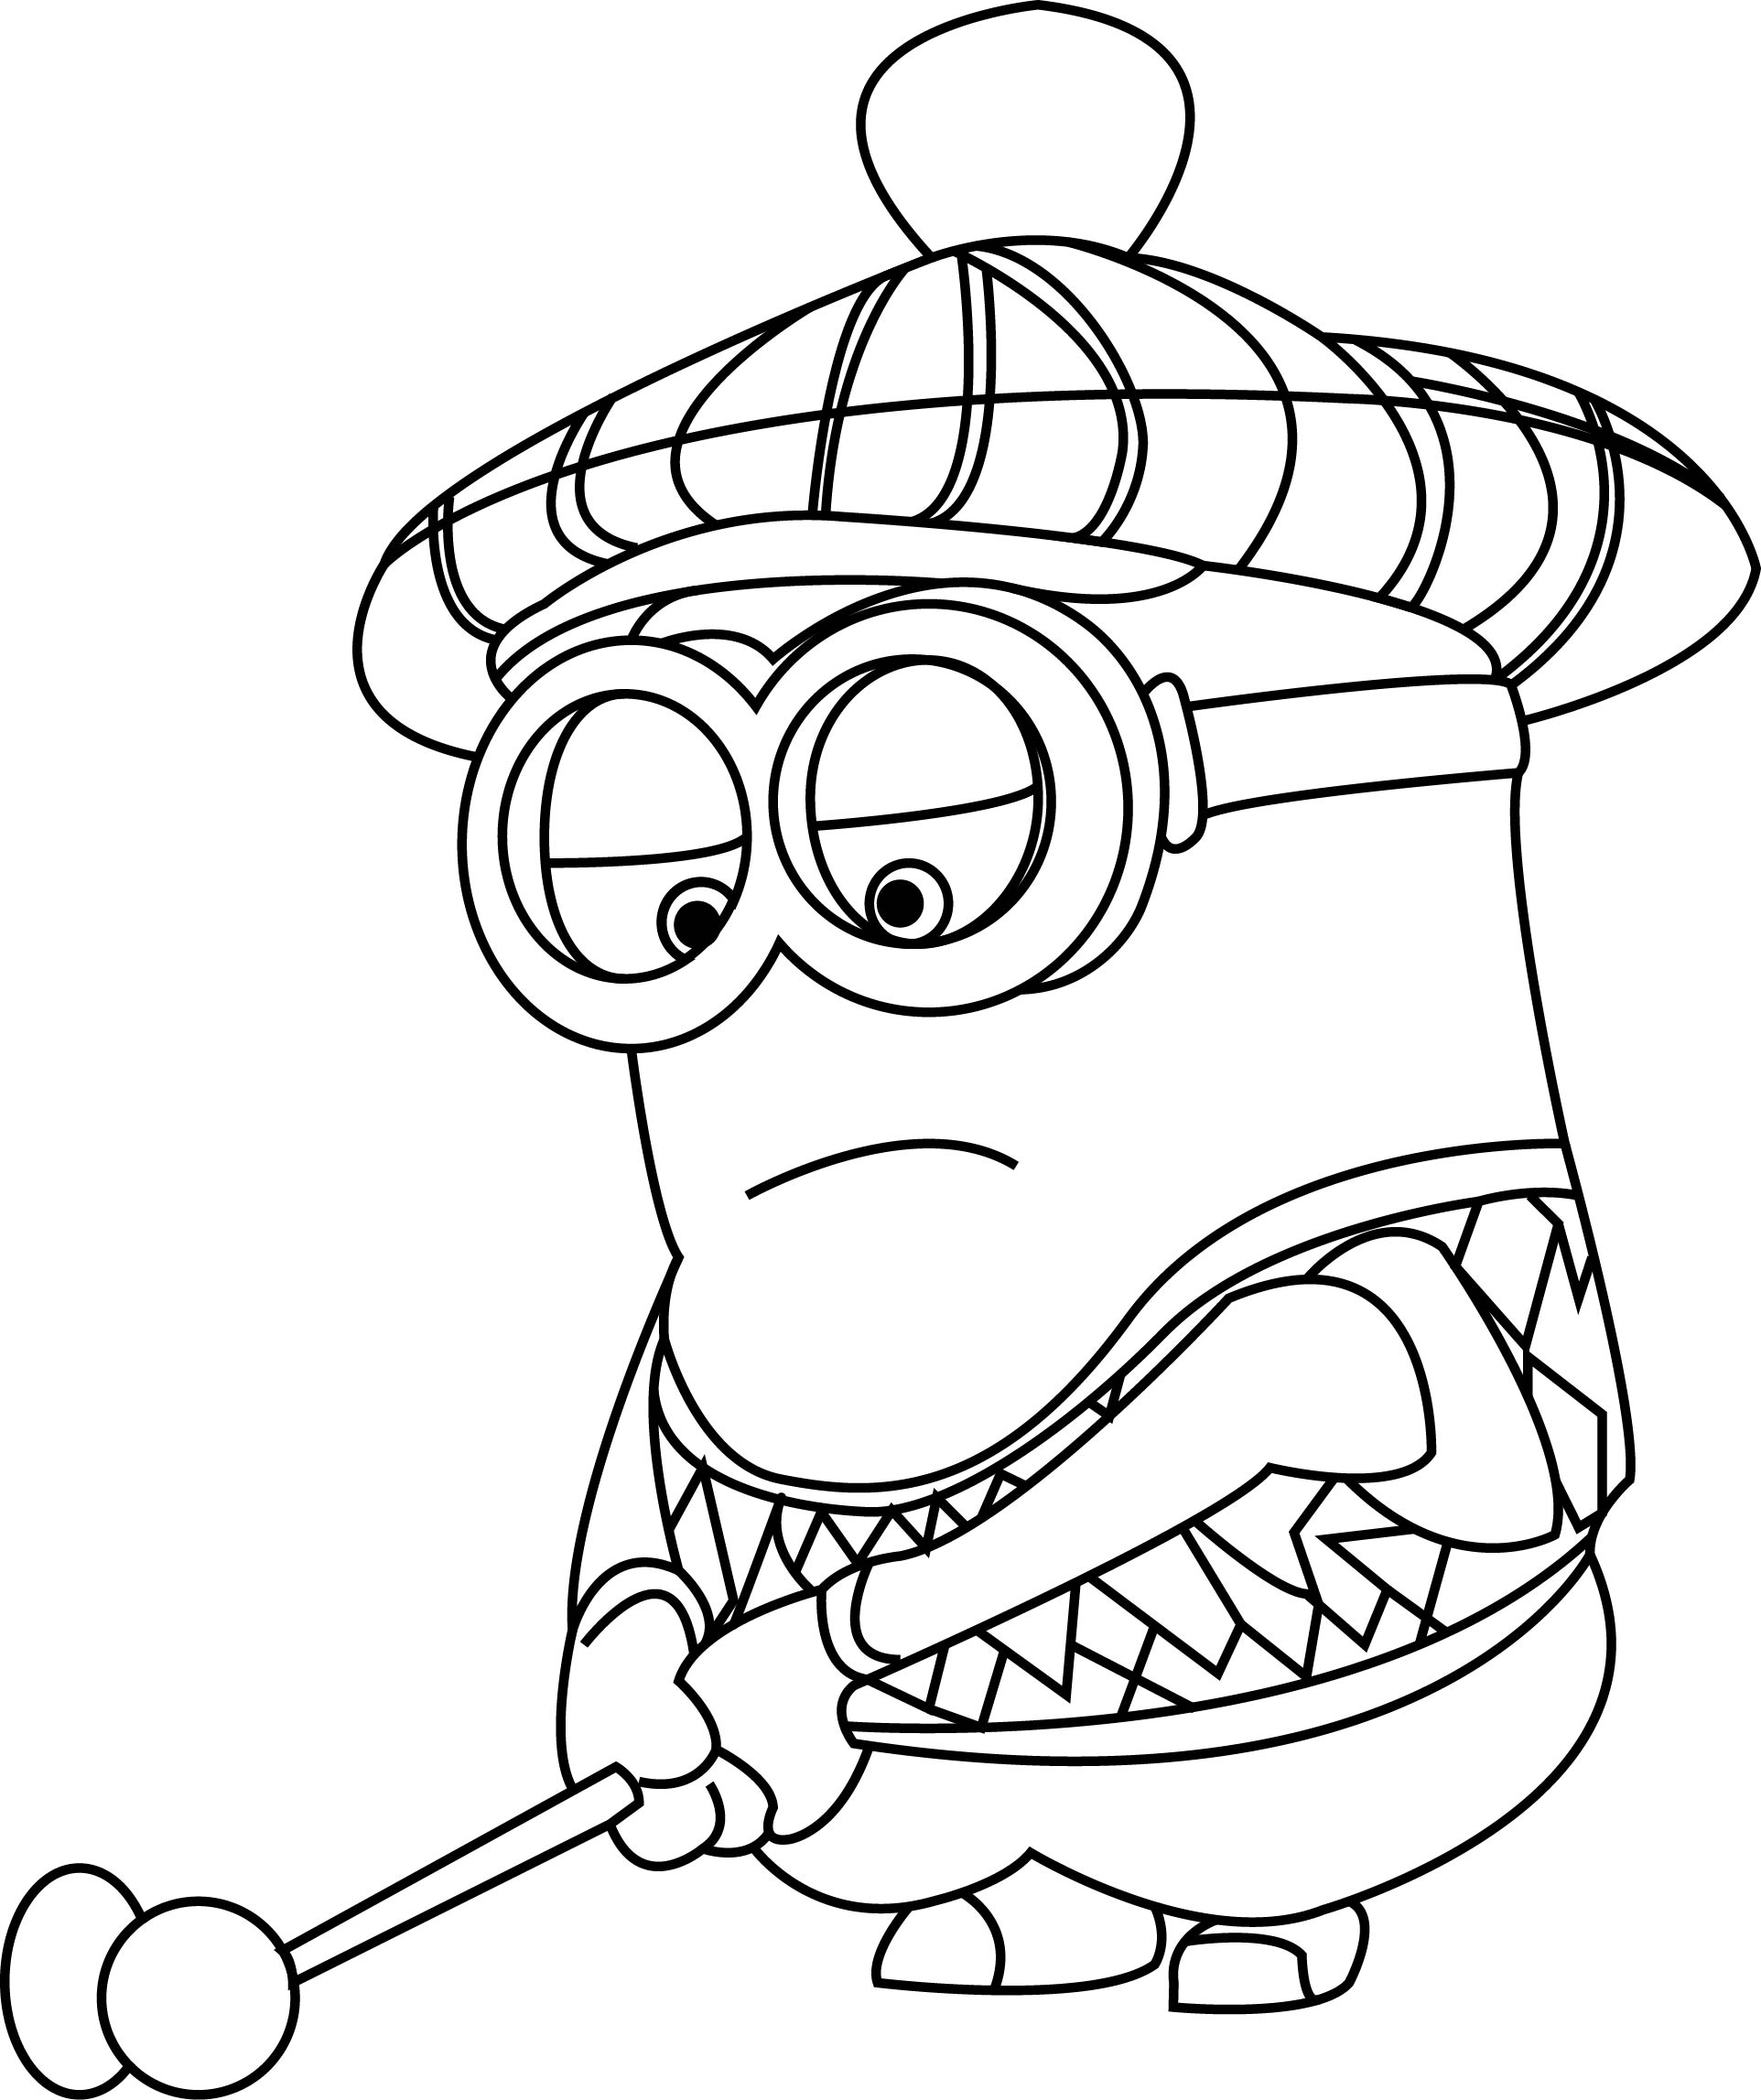 minion colouring page cool minions coloring pages check more at http minion colouring page